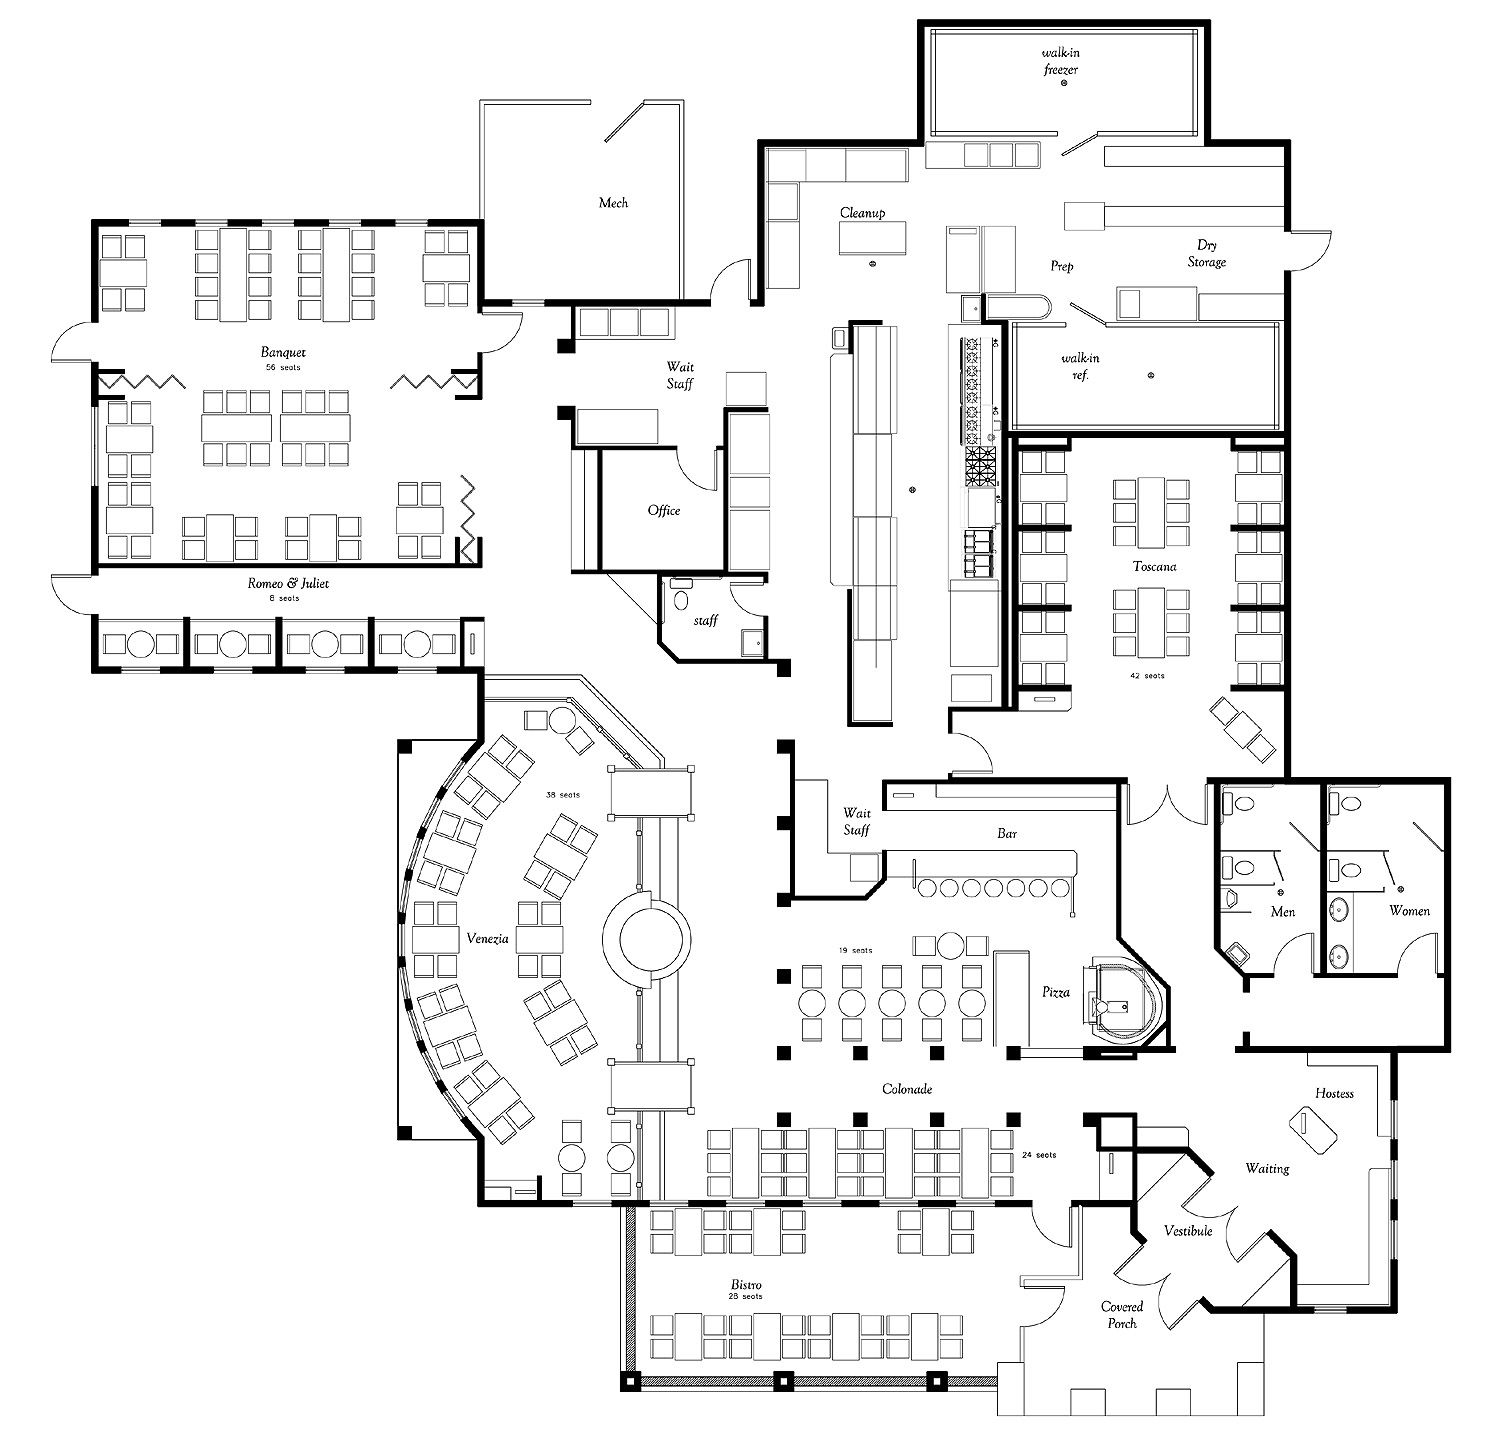 Small Restaurant Kitchen Floor Plan giovanni-italian-restaurant-floor-plan 1,500×1,447 pixels